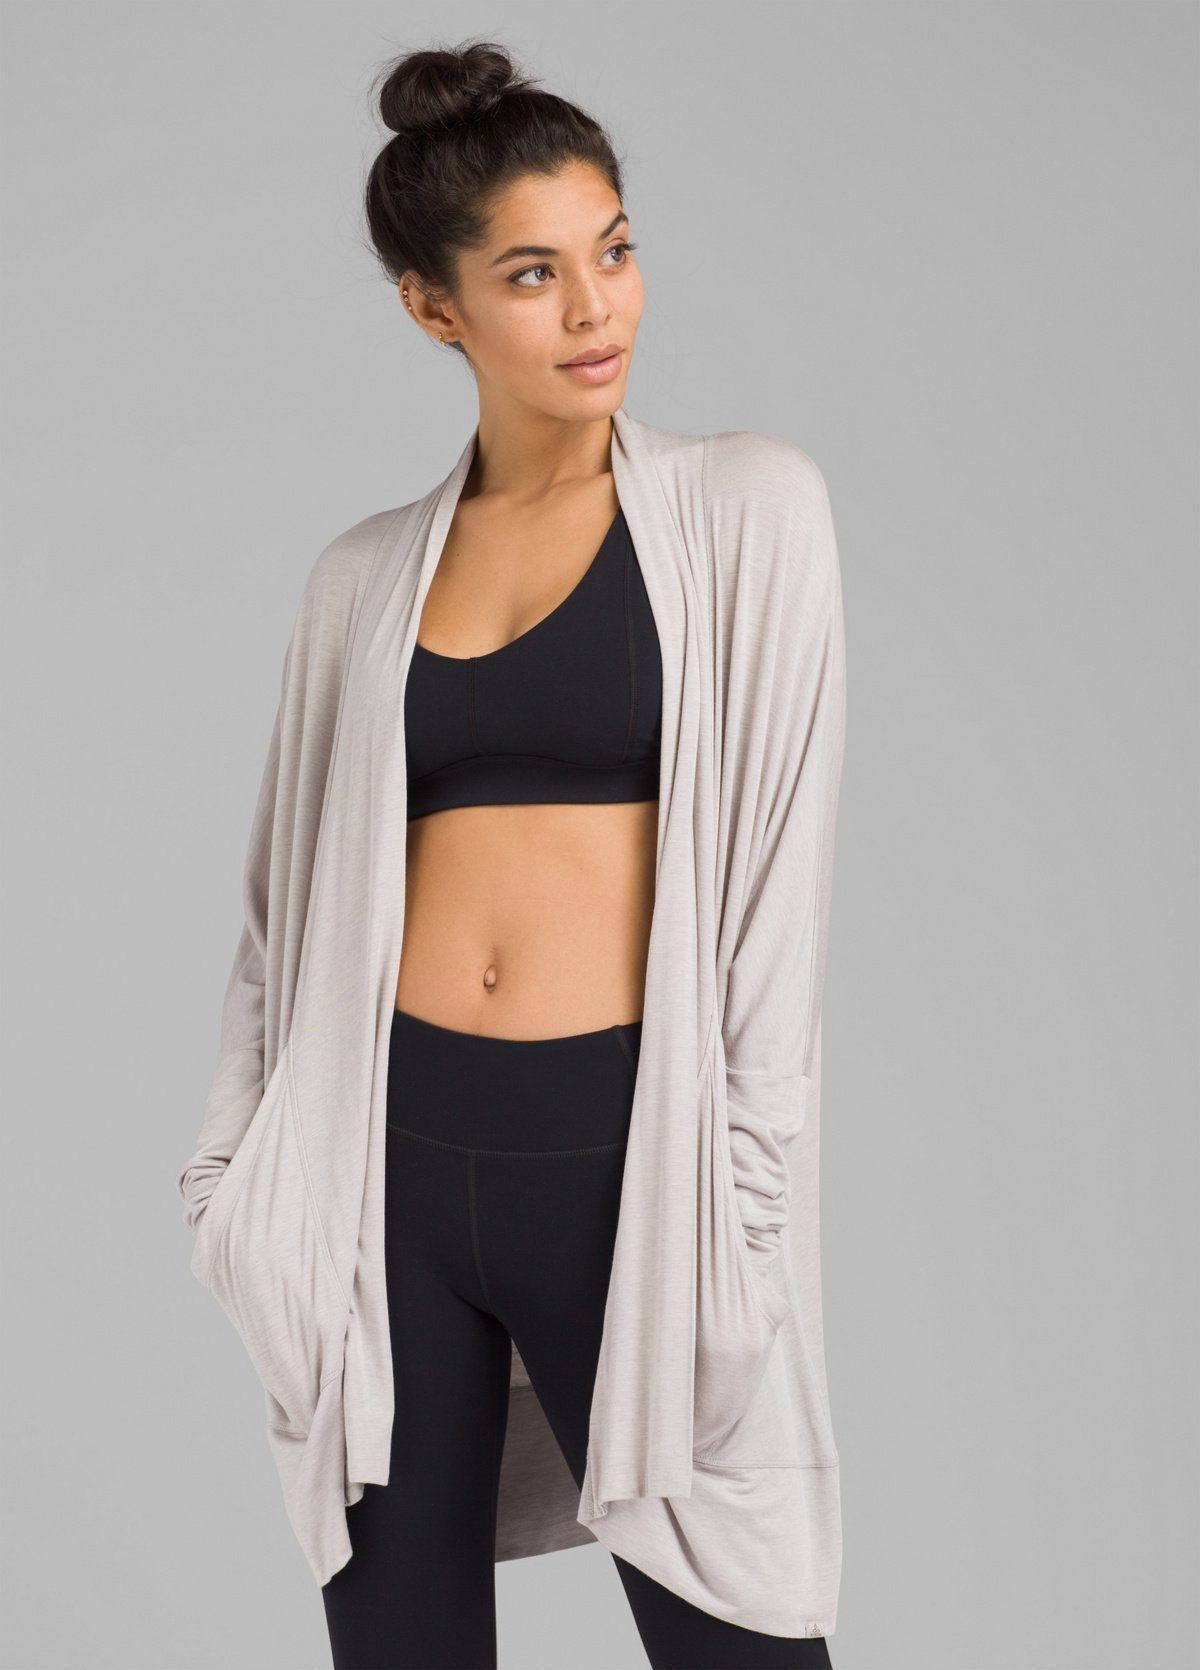 PrAna - W's Foundation Cardigan -  TENCEL ™ Renewable Fiber - Weekendbee - sustainable sportswear